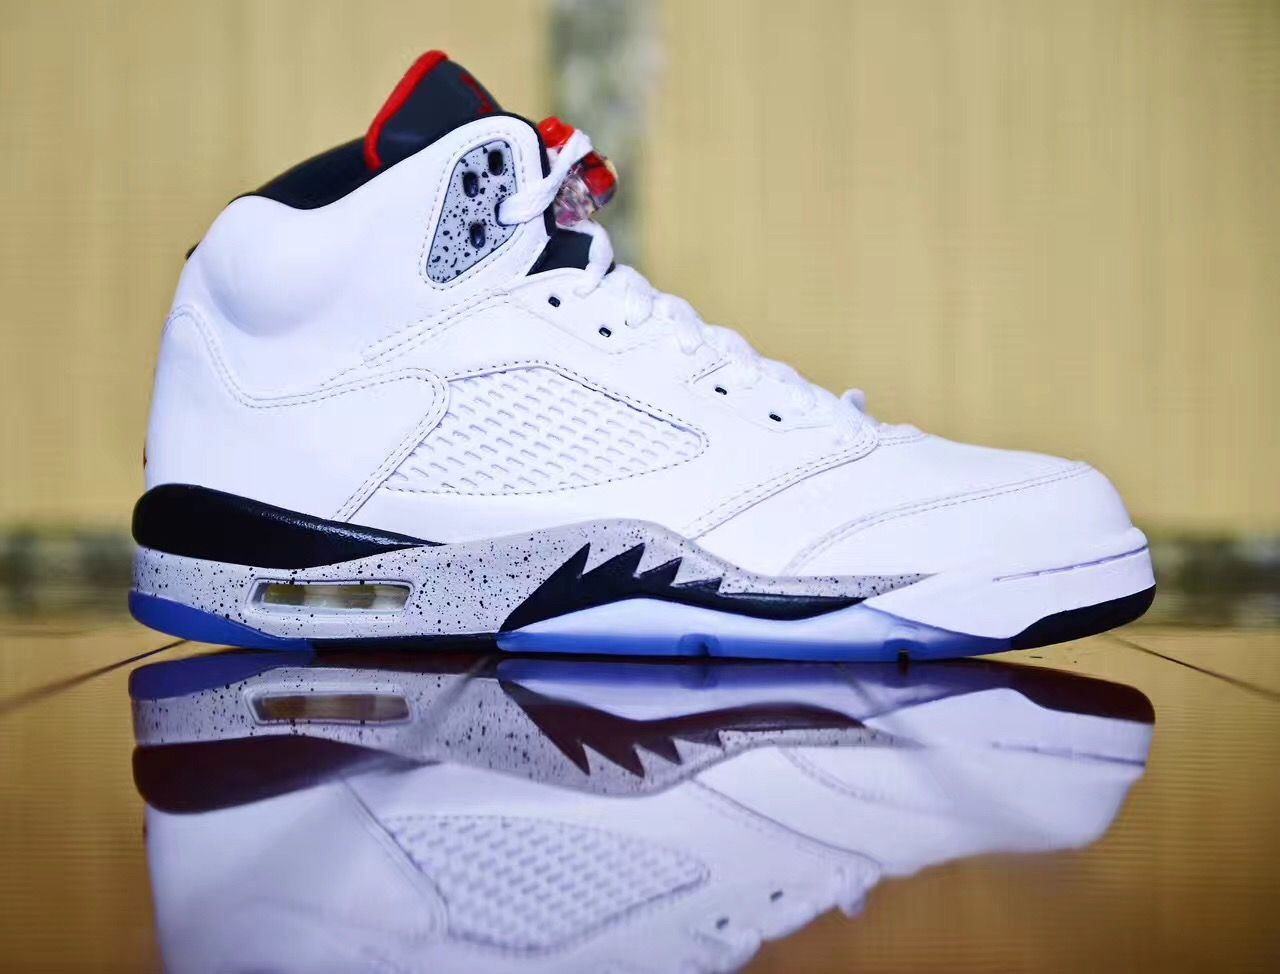 quality design c3558 7d8ad Air Jordan 5 White Cement Release Date 136027-104 | Detroit ...